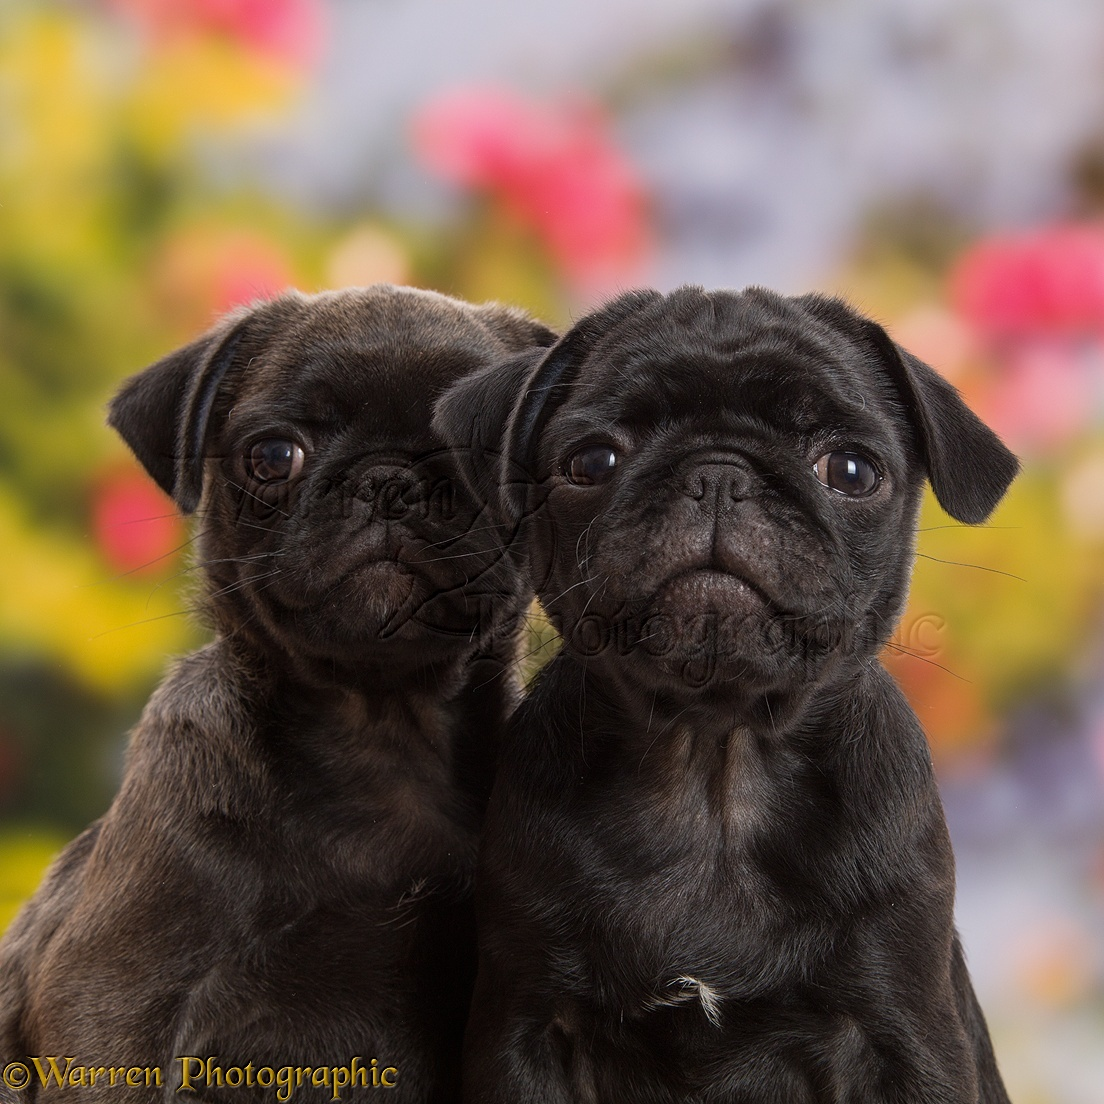 Platinum and Black Pug puppies 10 weeks old & Dogs: Platinum and Black Pug puppies 10 weeks old photo WP43473